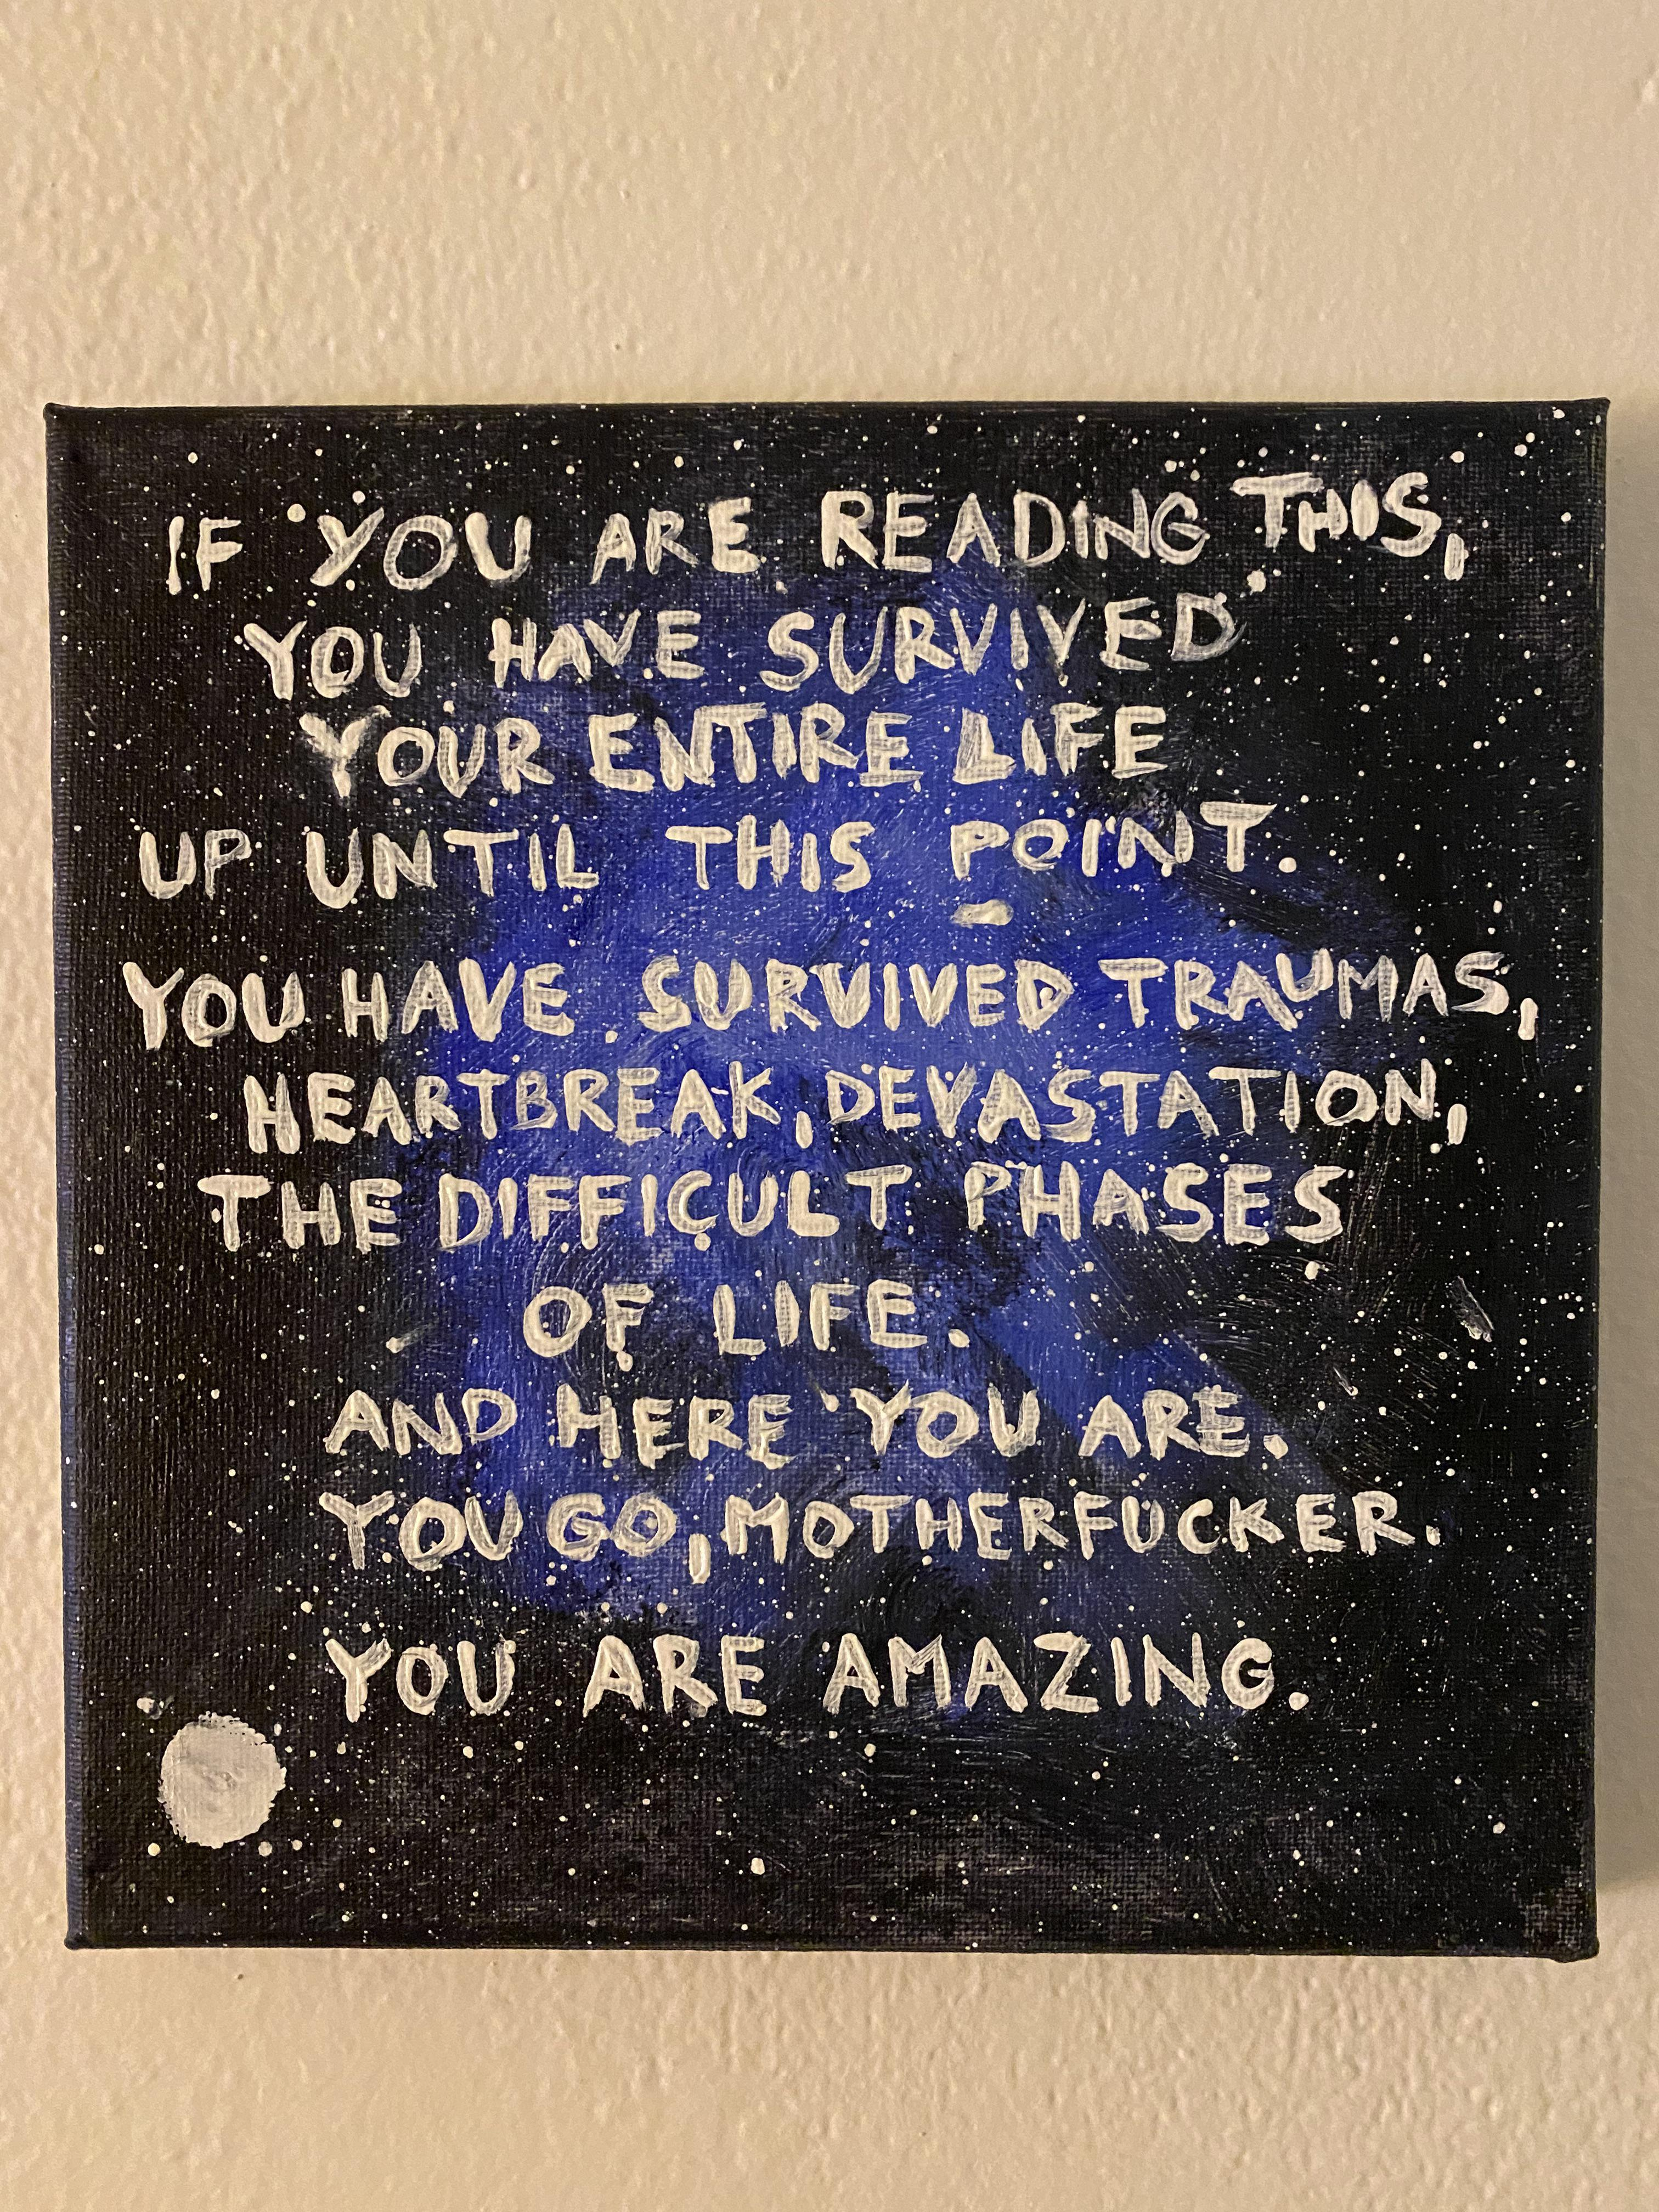 [Image] If you are reading this,